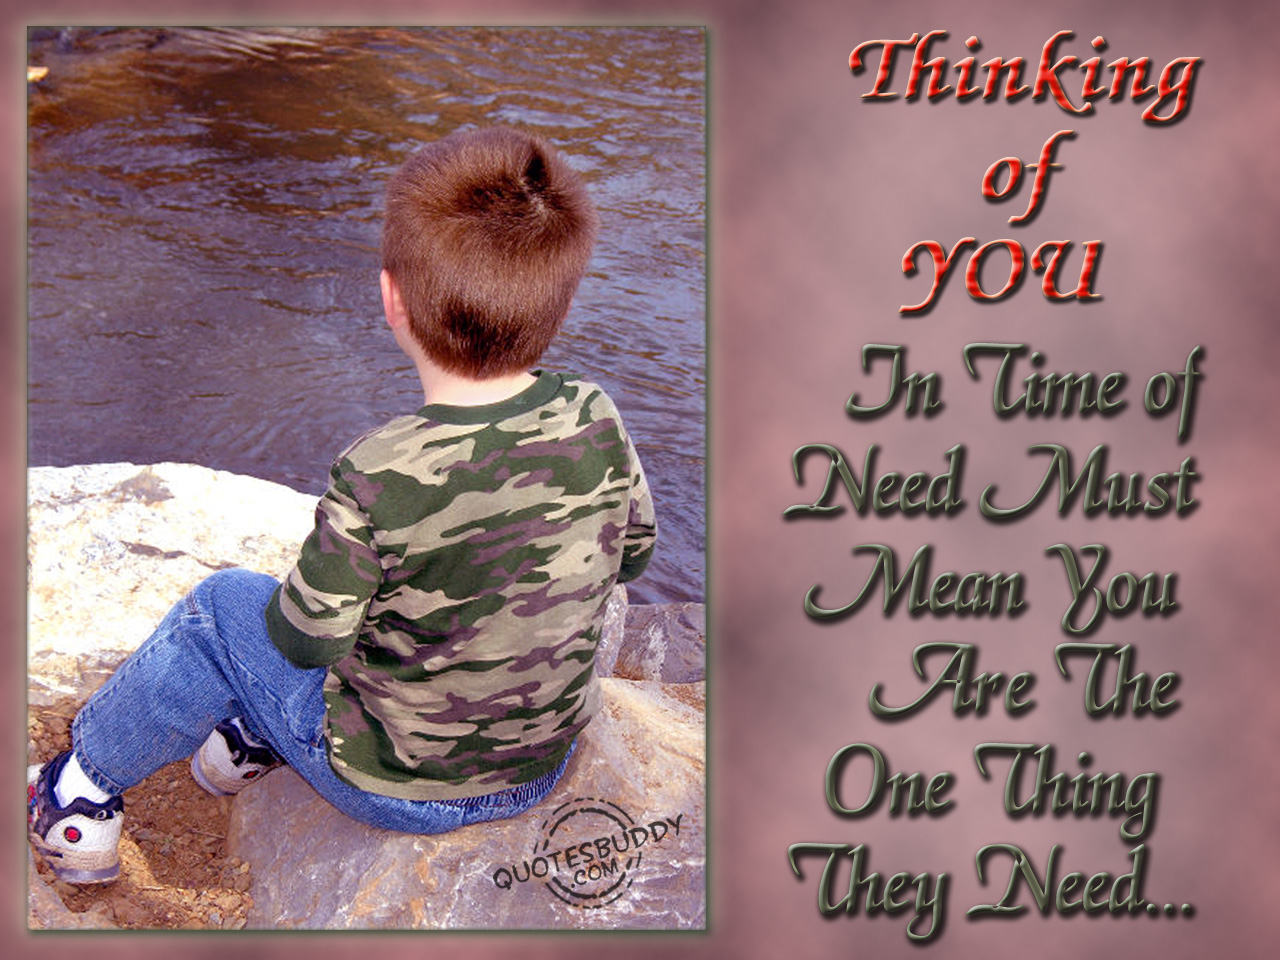 Thinking Of You In Time Of Need Must Mean You Are The One Thing They Need